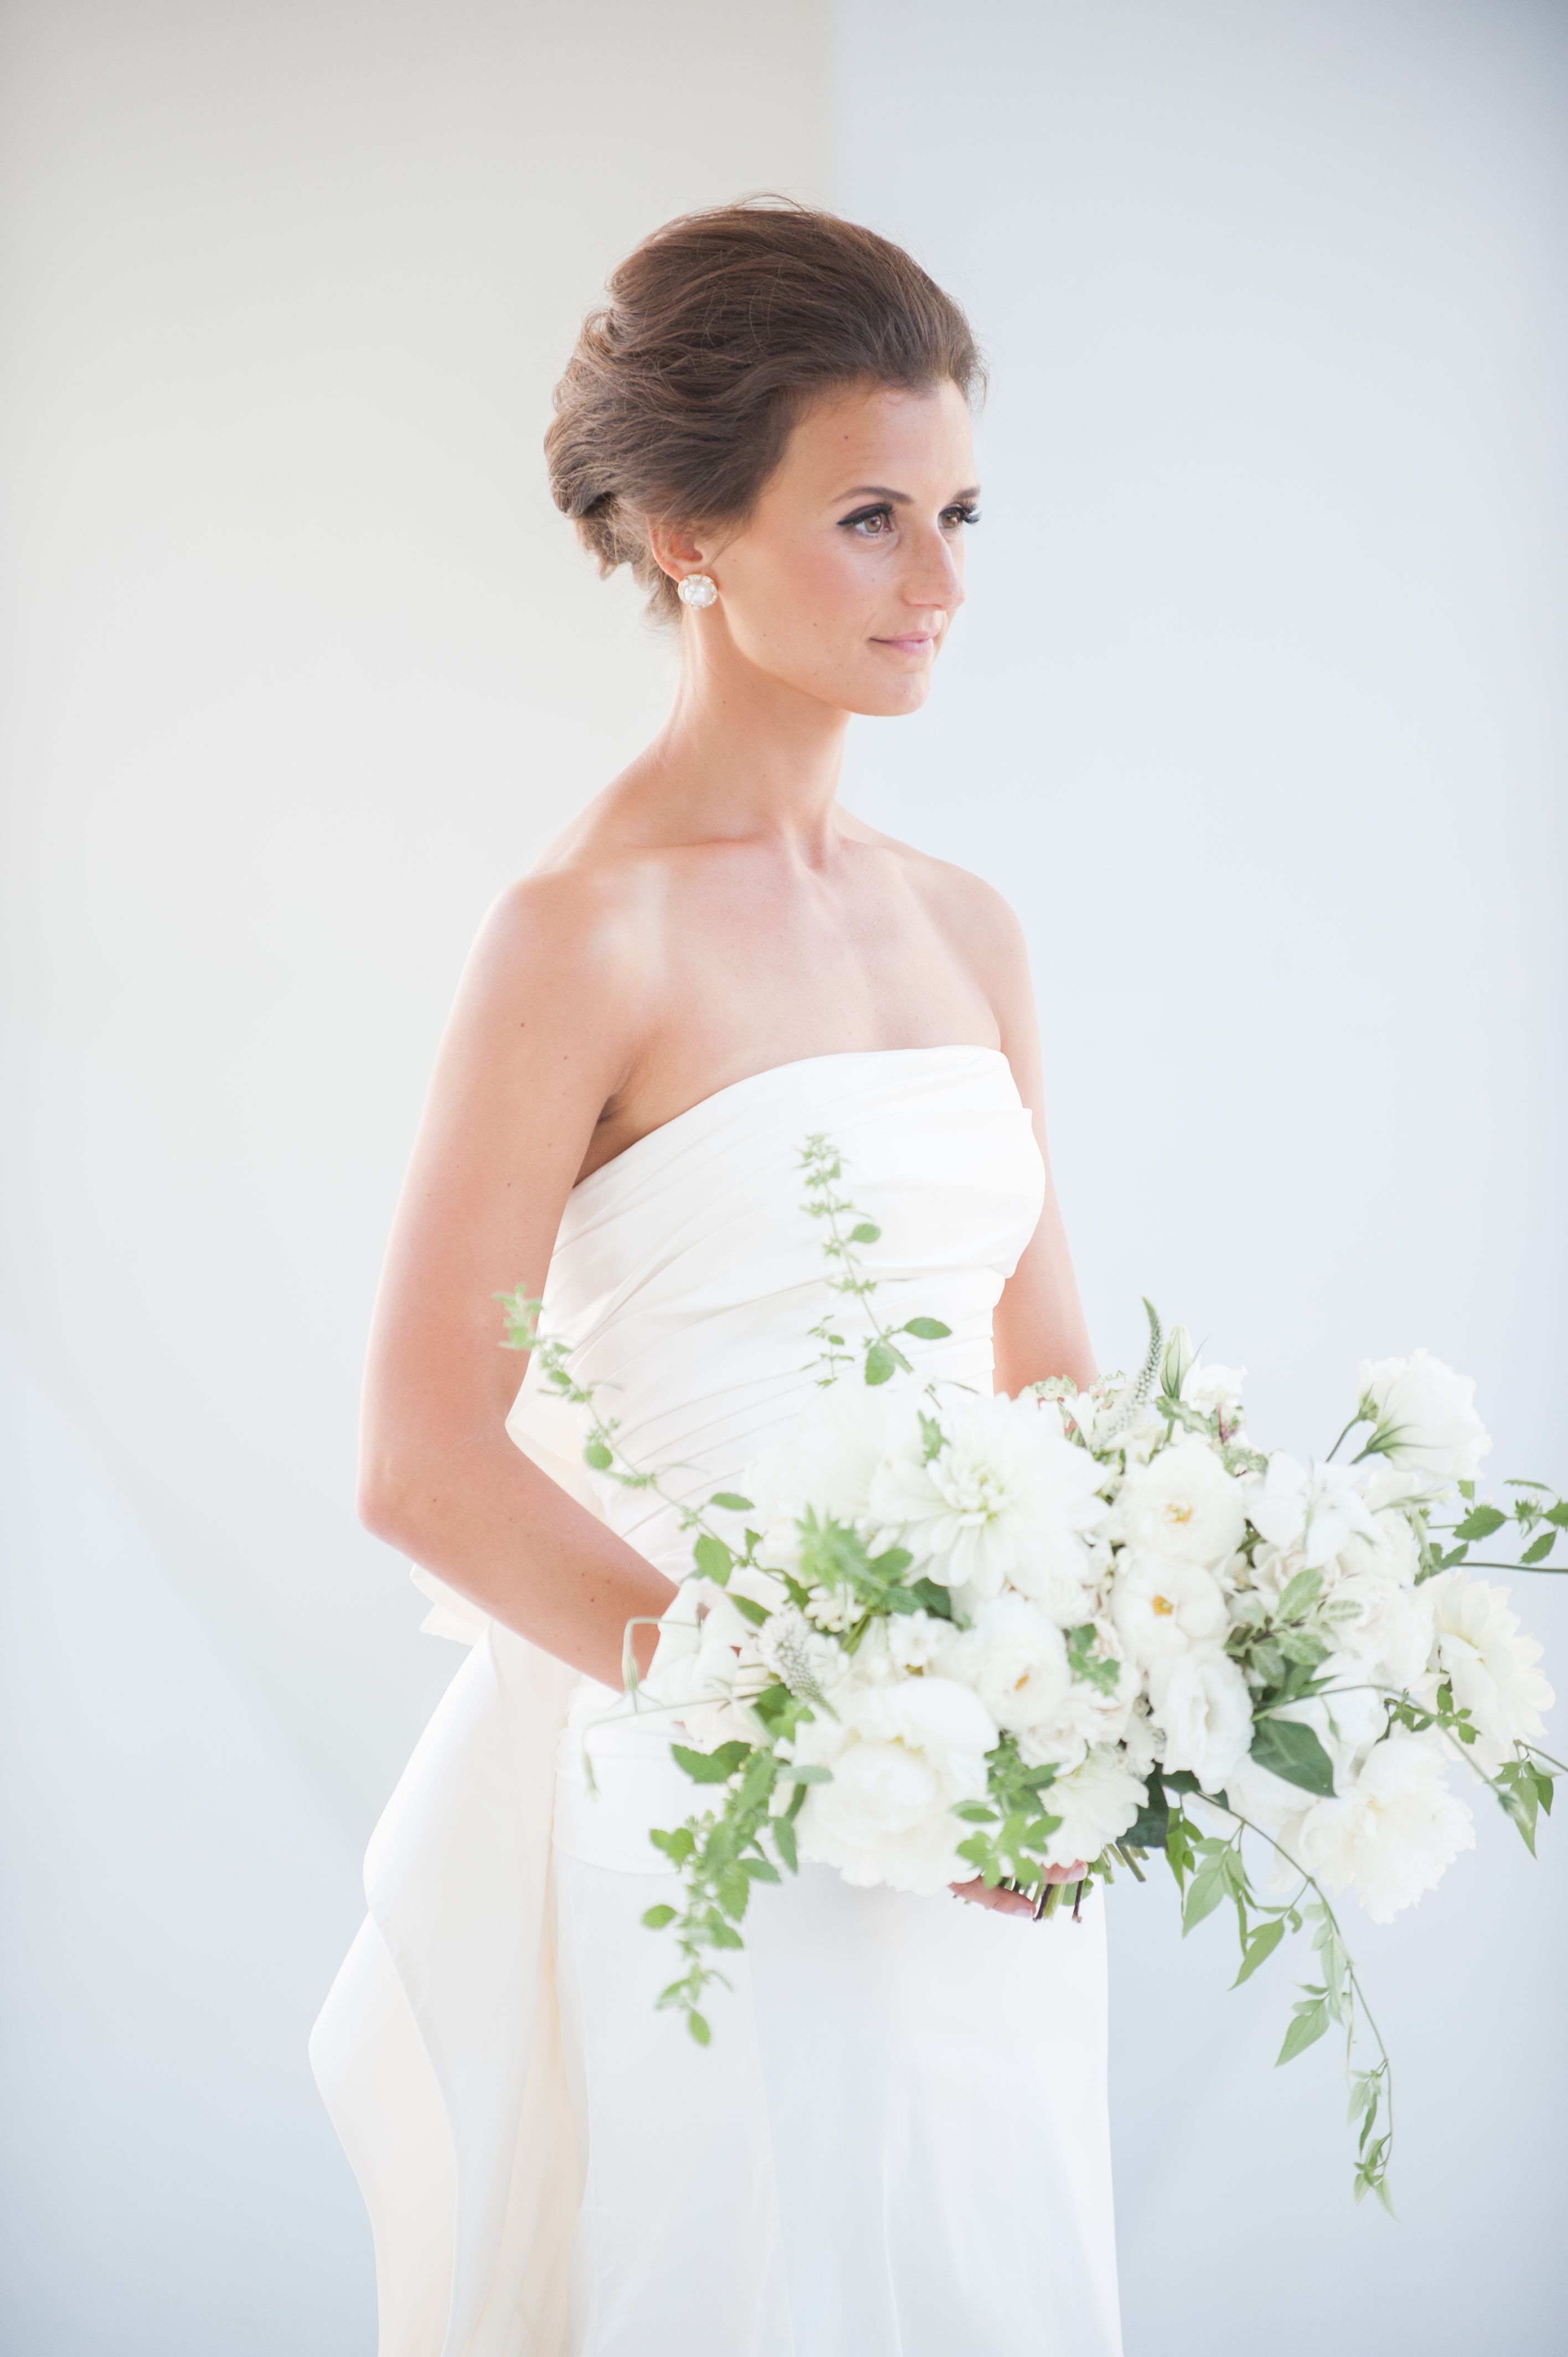 Andrea on her wedding day.  Florals by Celsia Floral  Event Design: Spread Love Events  Melissa Gidney Photography